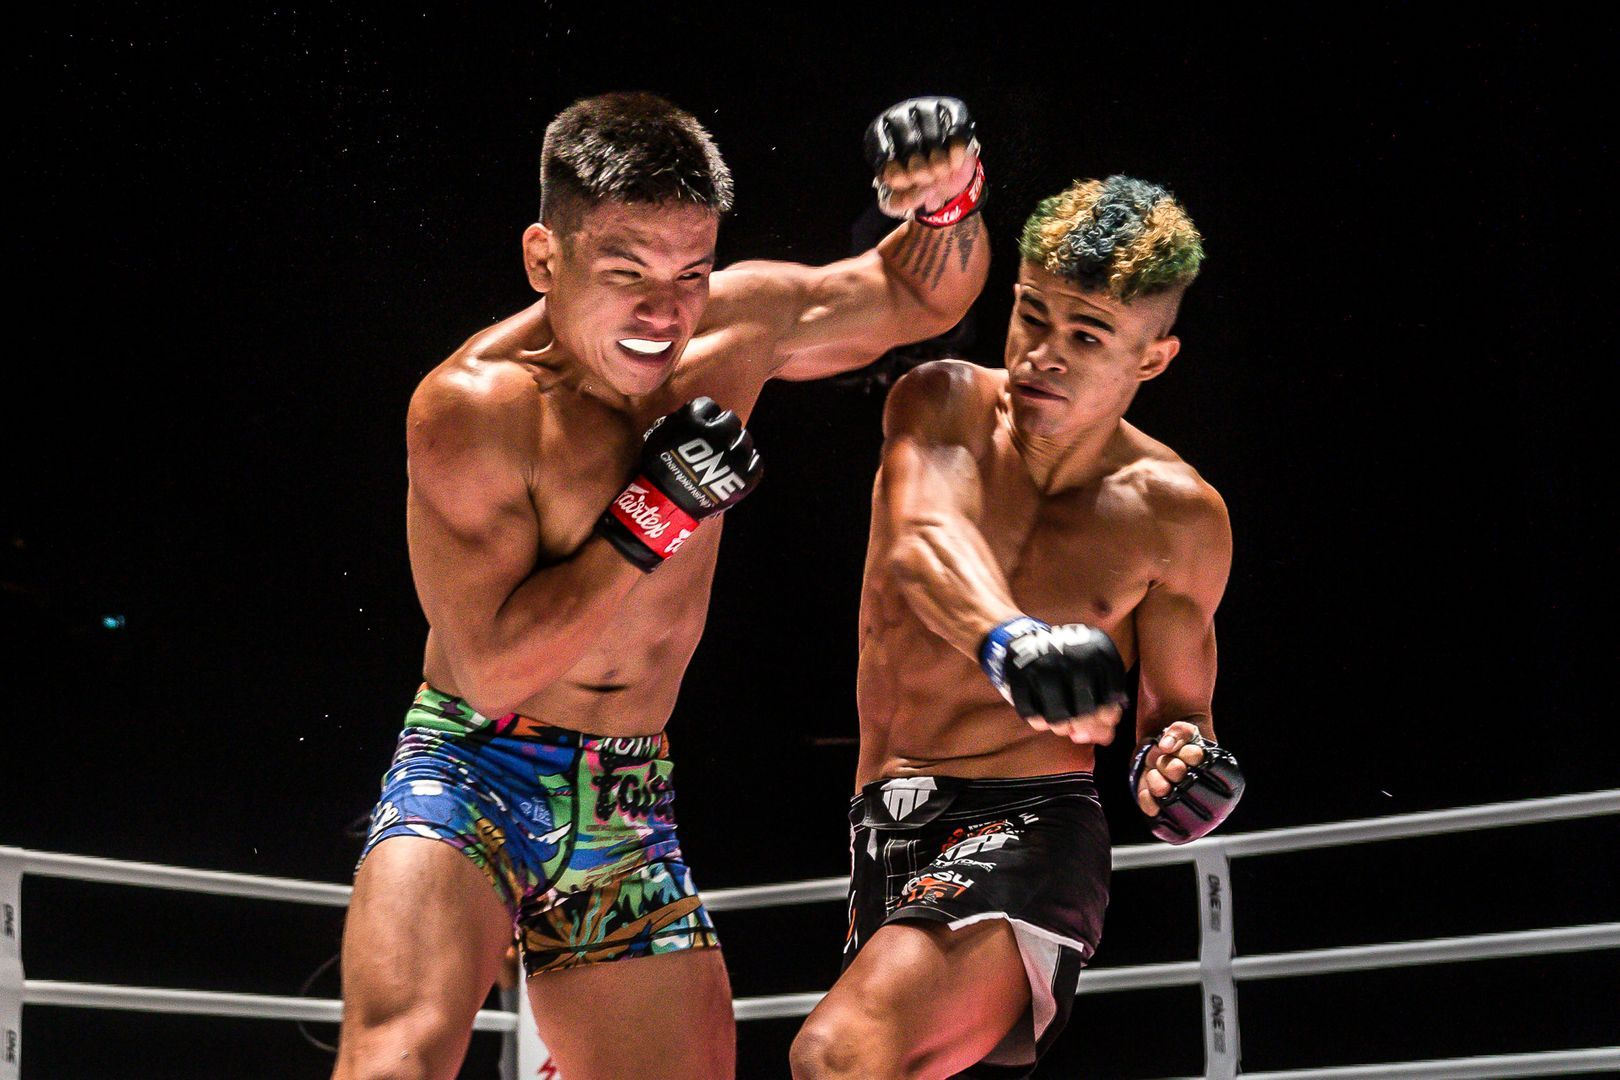 Brazil's Fabricio Andrade cracks Mark Fairtex Abelado